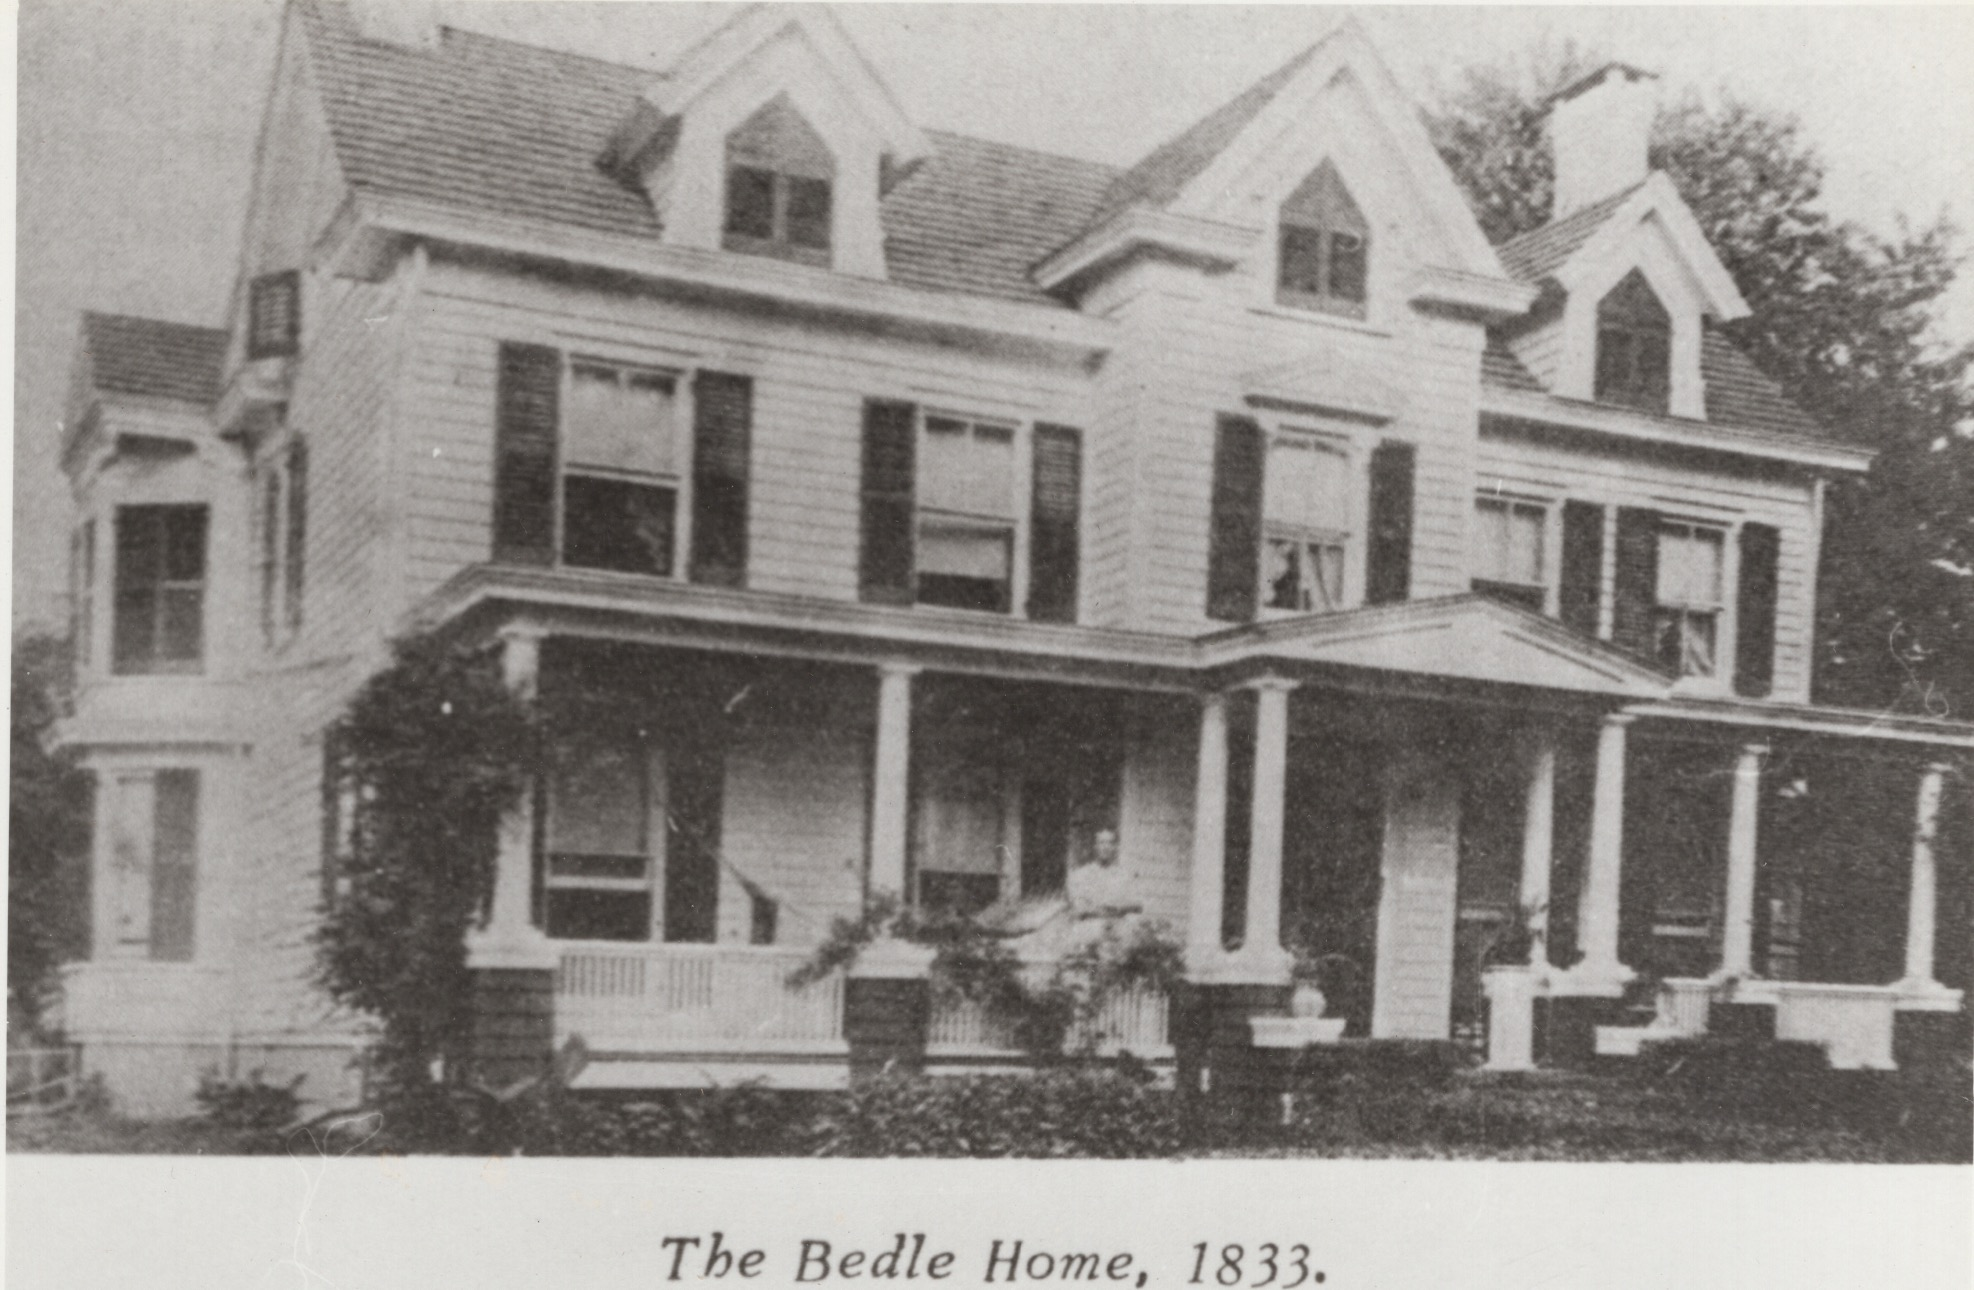 The Bedle Home